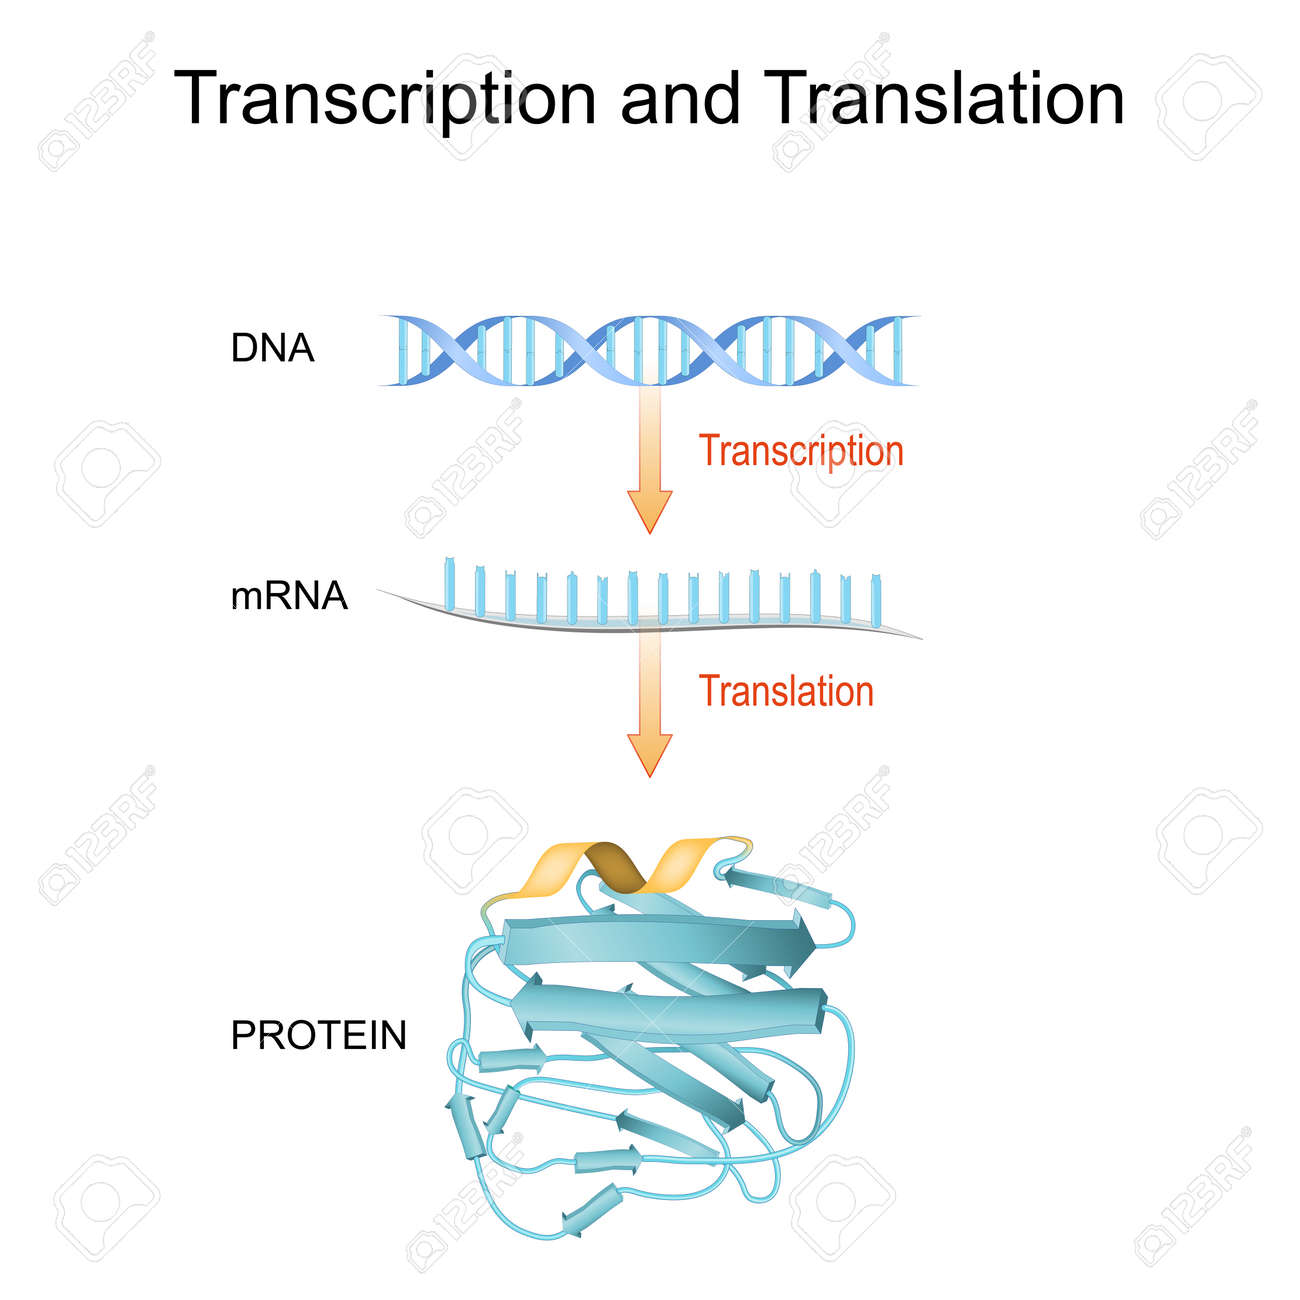 DNA, RNA, mRNA and Protein synthesis. Difference between Transcription and Translation. Biological functions of DNA. Genes and genomes. Genetic code. - 170310876